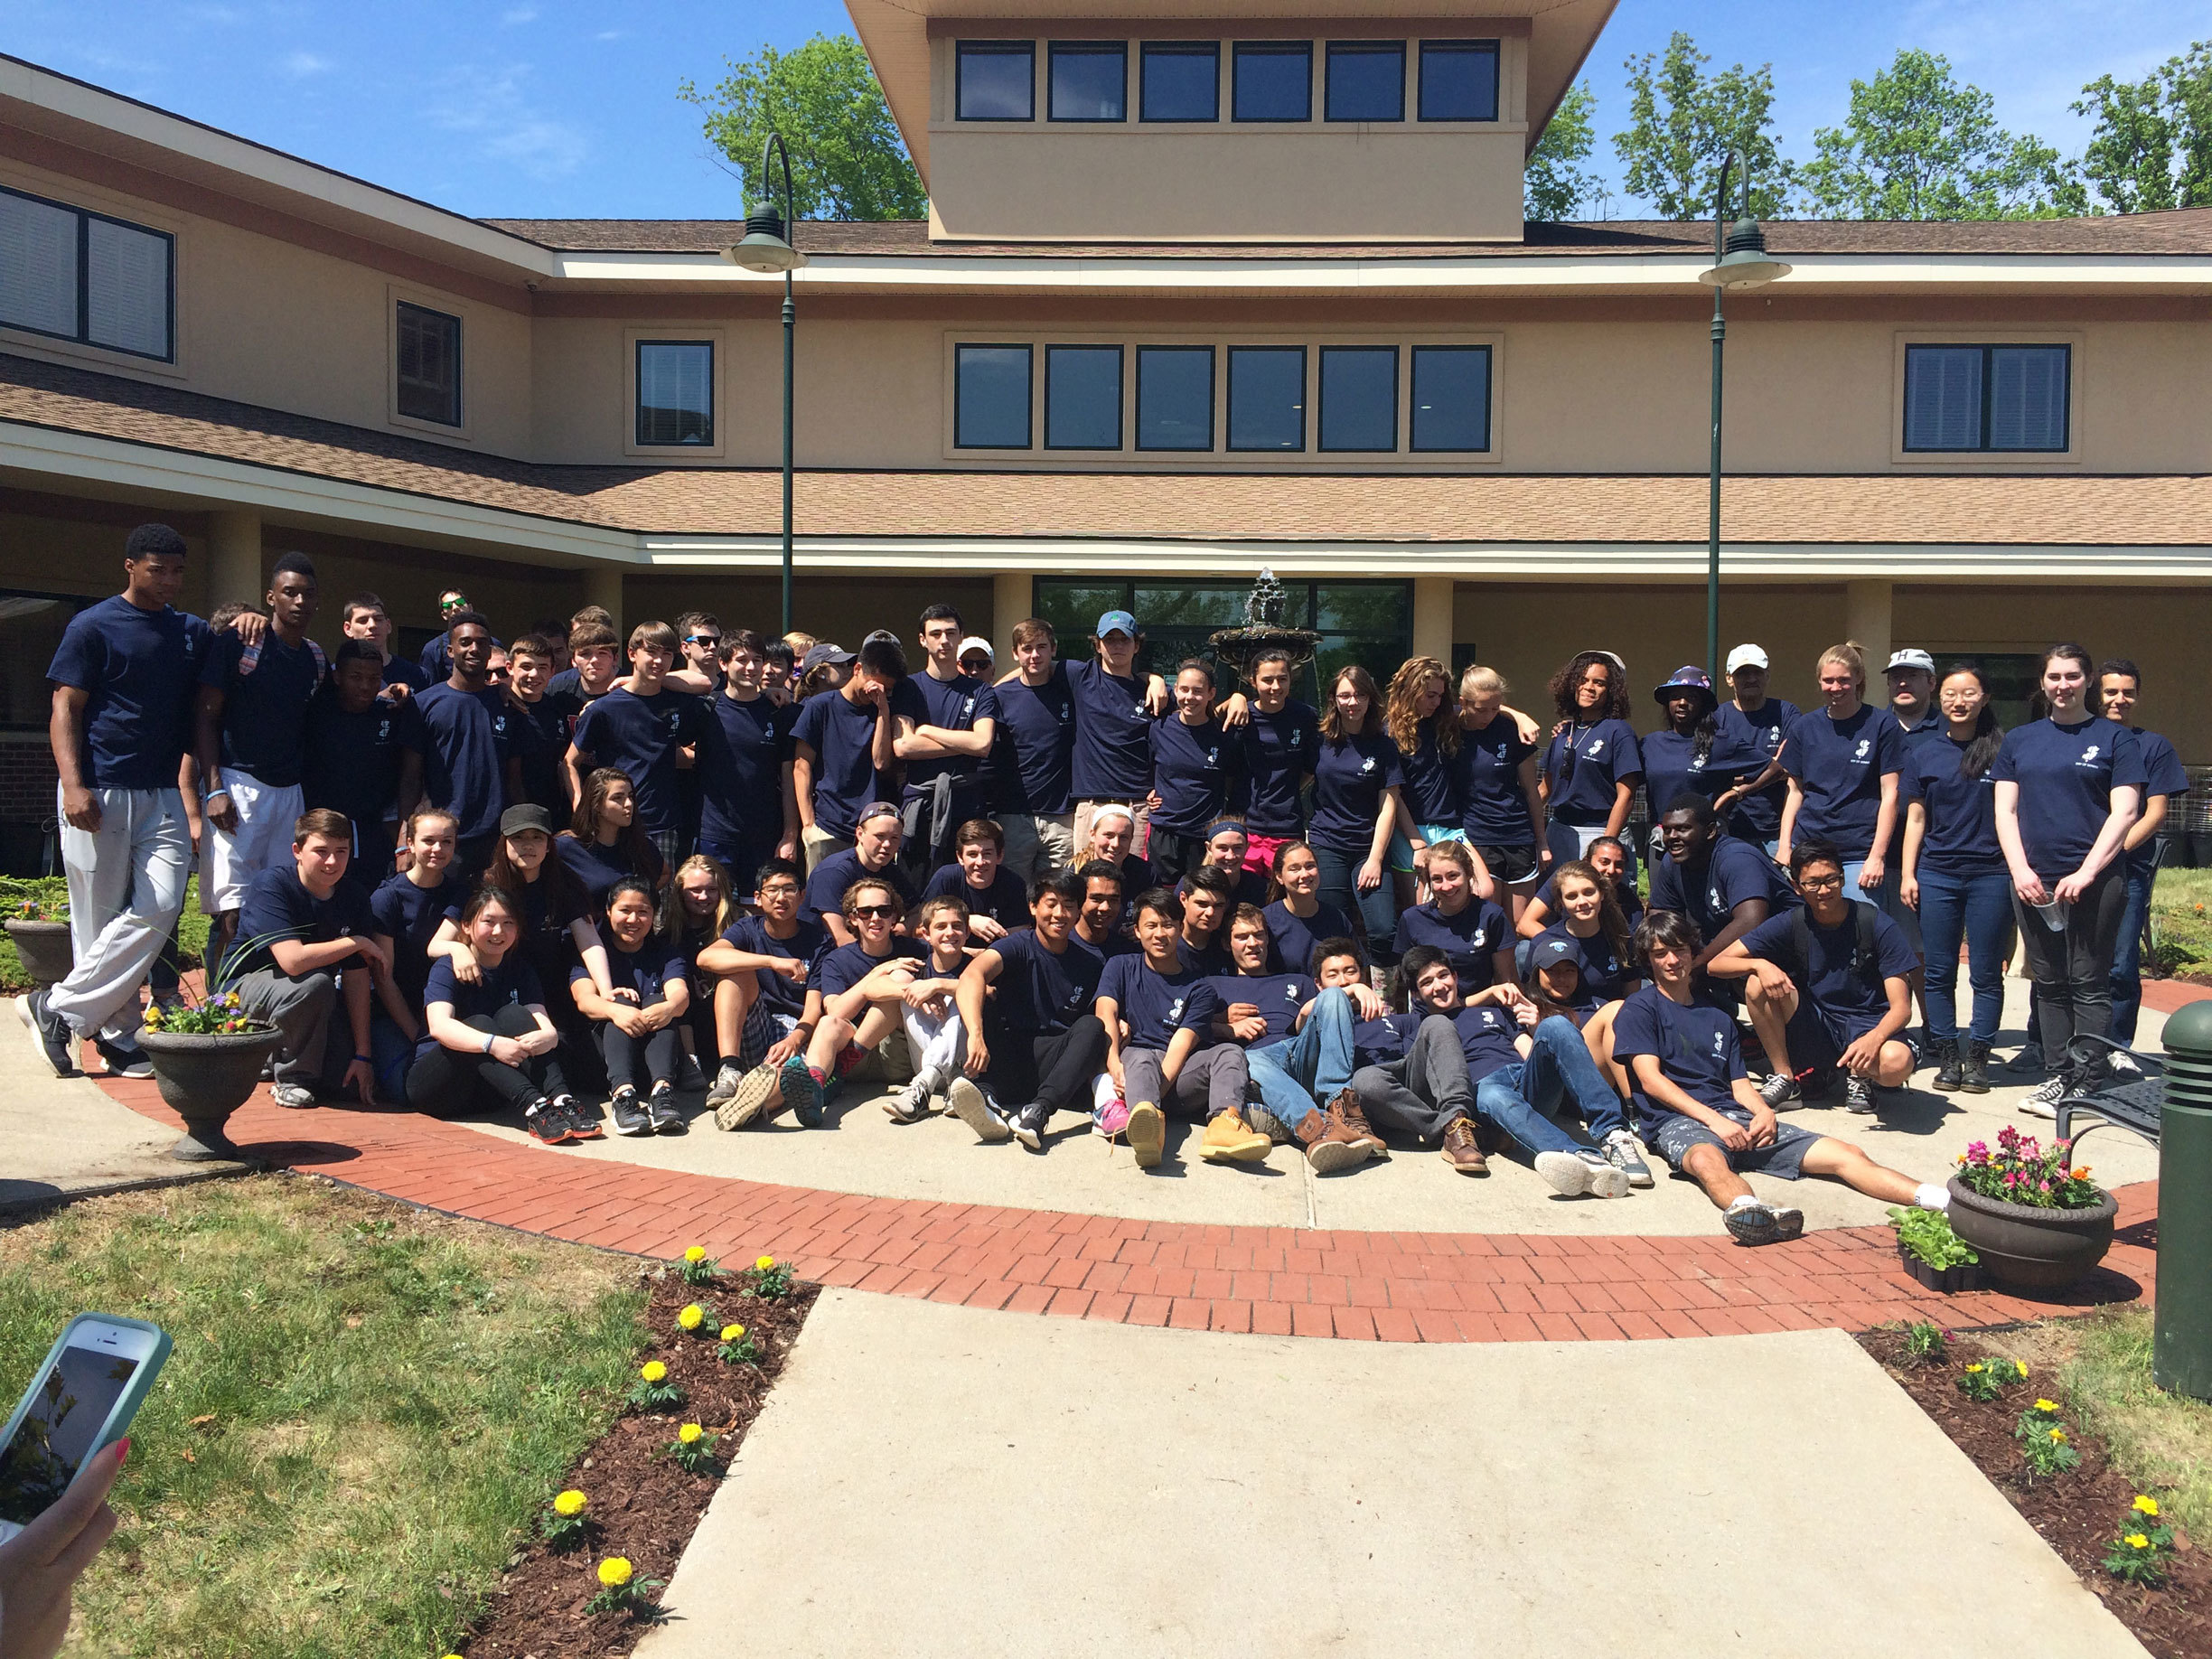 9aec083b7b4f930a944d_Blair-Day-of-Service-Group-Photo_May-2015.jpg